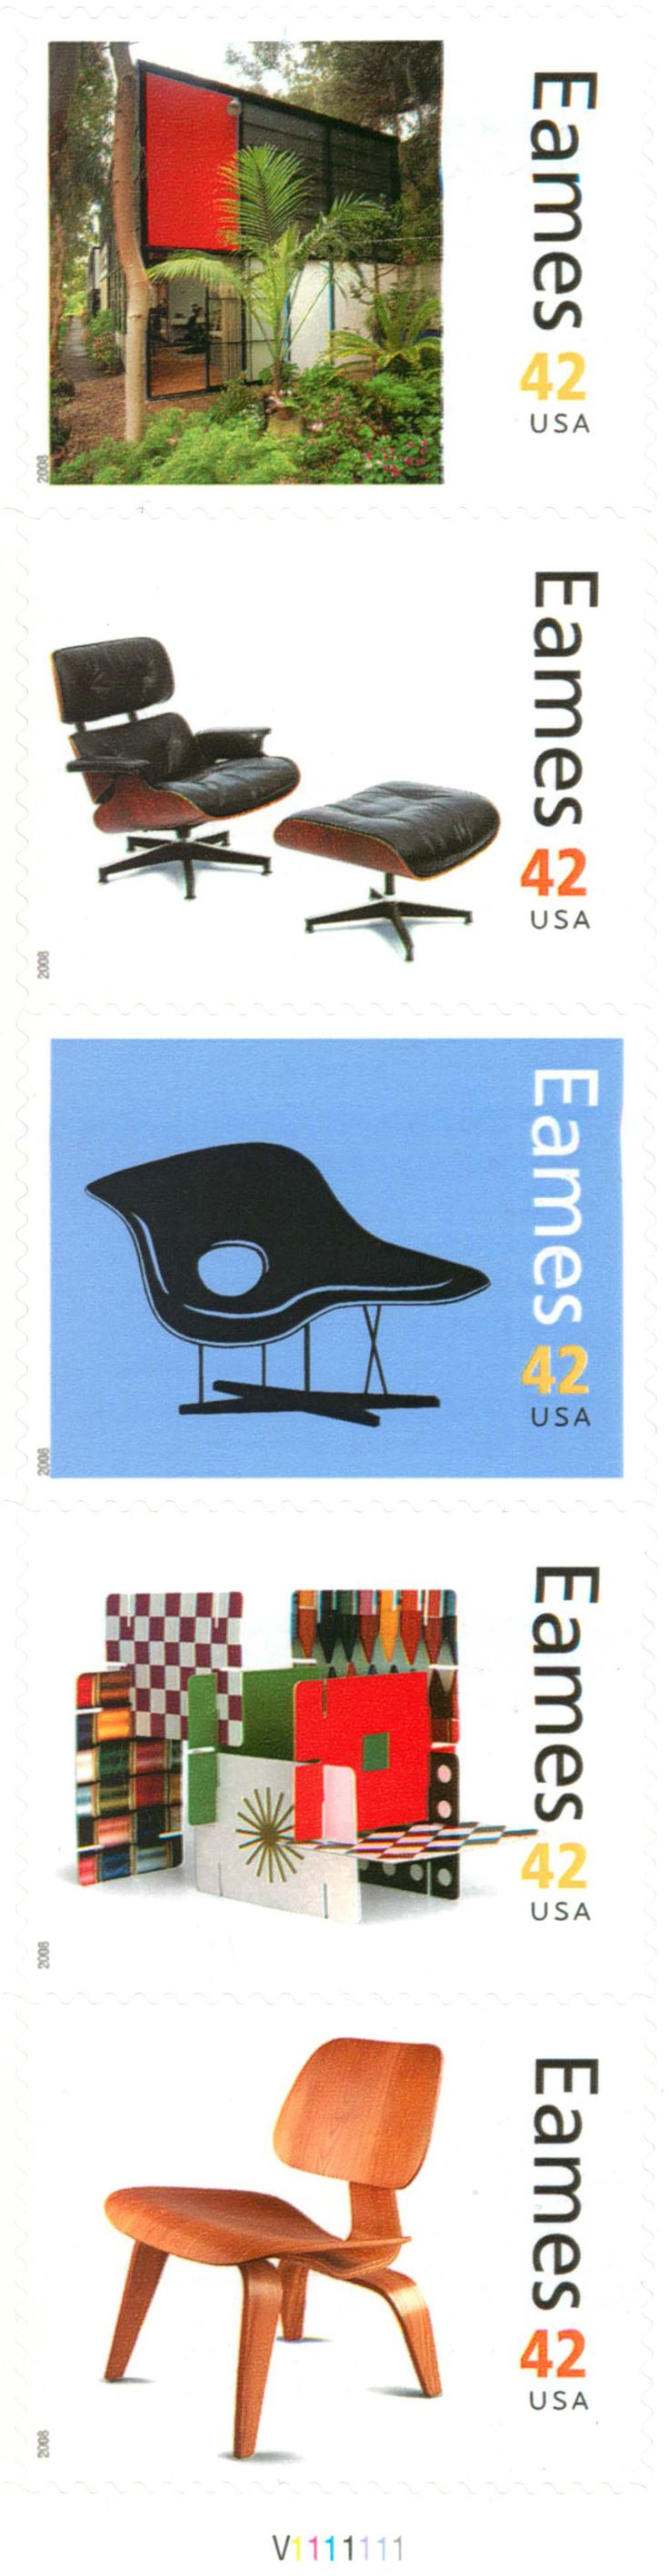 Have you collected Eames stamps? Stamps designed for the U.S.P.S. by Derry Noyes, daughter of Elliot Noyes, noted museum curator and IBM in-house design chief and friend of Charles and Ray Eames http://uspsstamps.com/people/derry-noyes